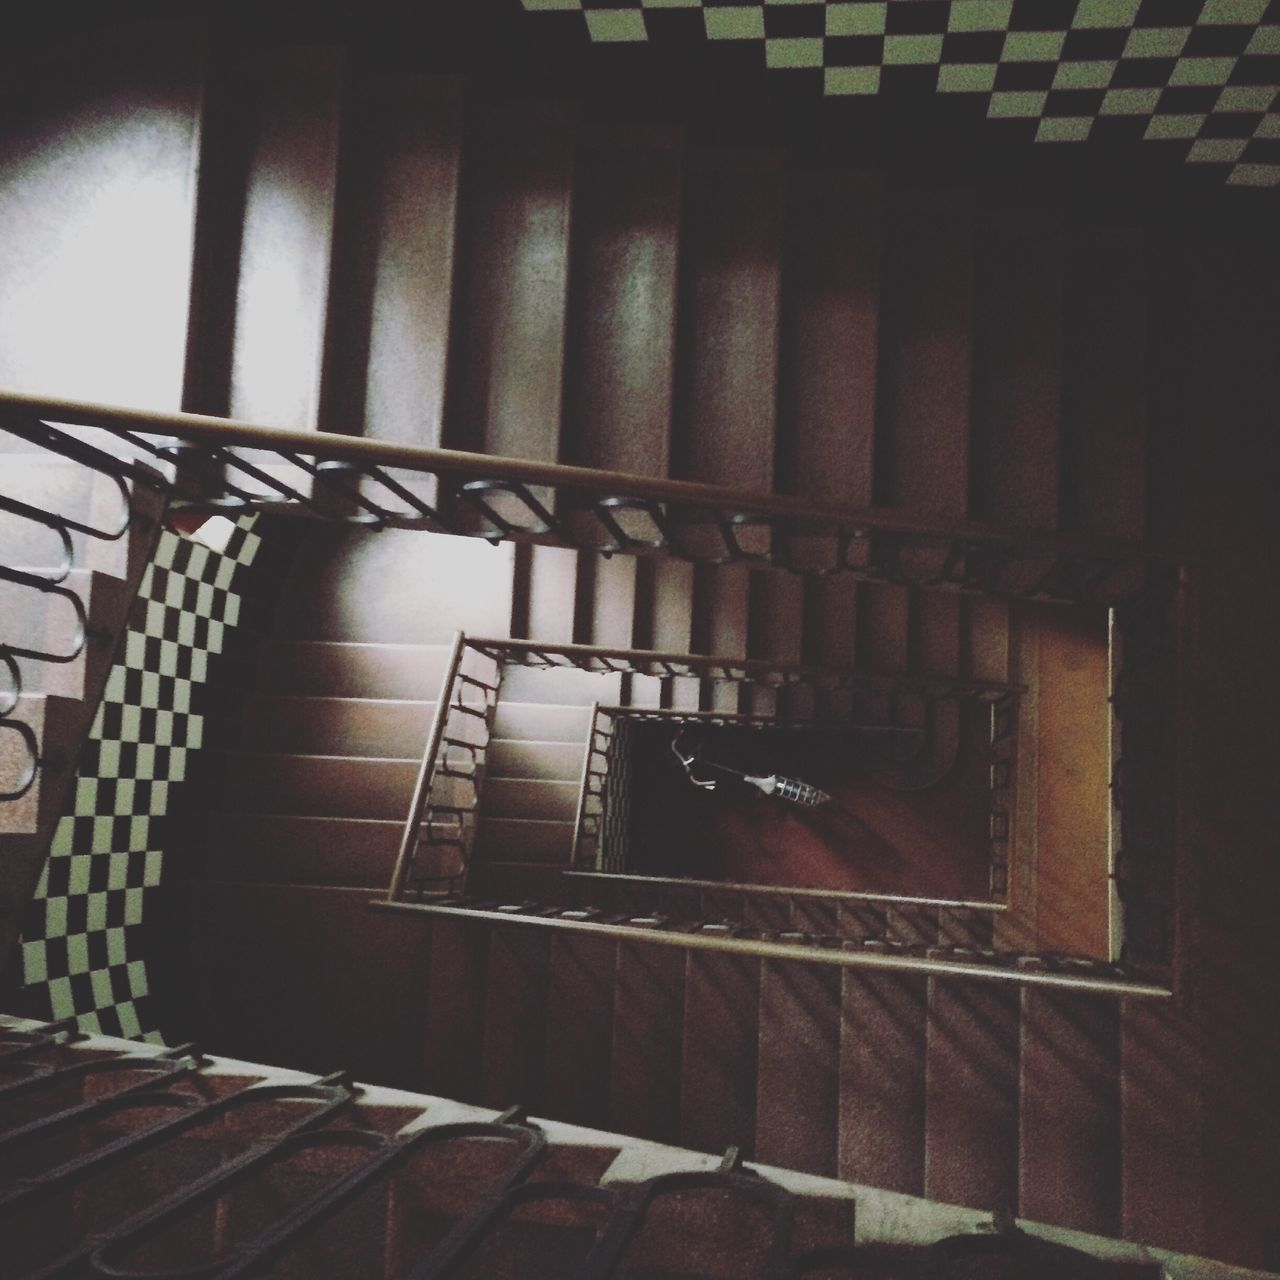 staircase, steps and staircases, steps, railing, architecture, built structure, stairs, spiral, indoors, spiral stairs, no people, hand rail, spiral staircase, day